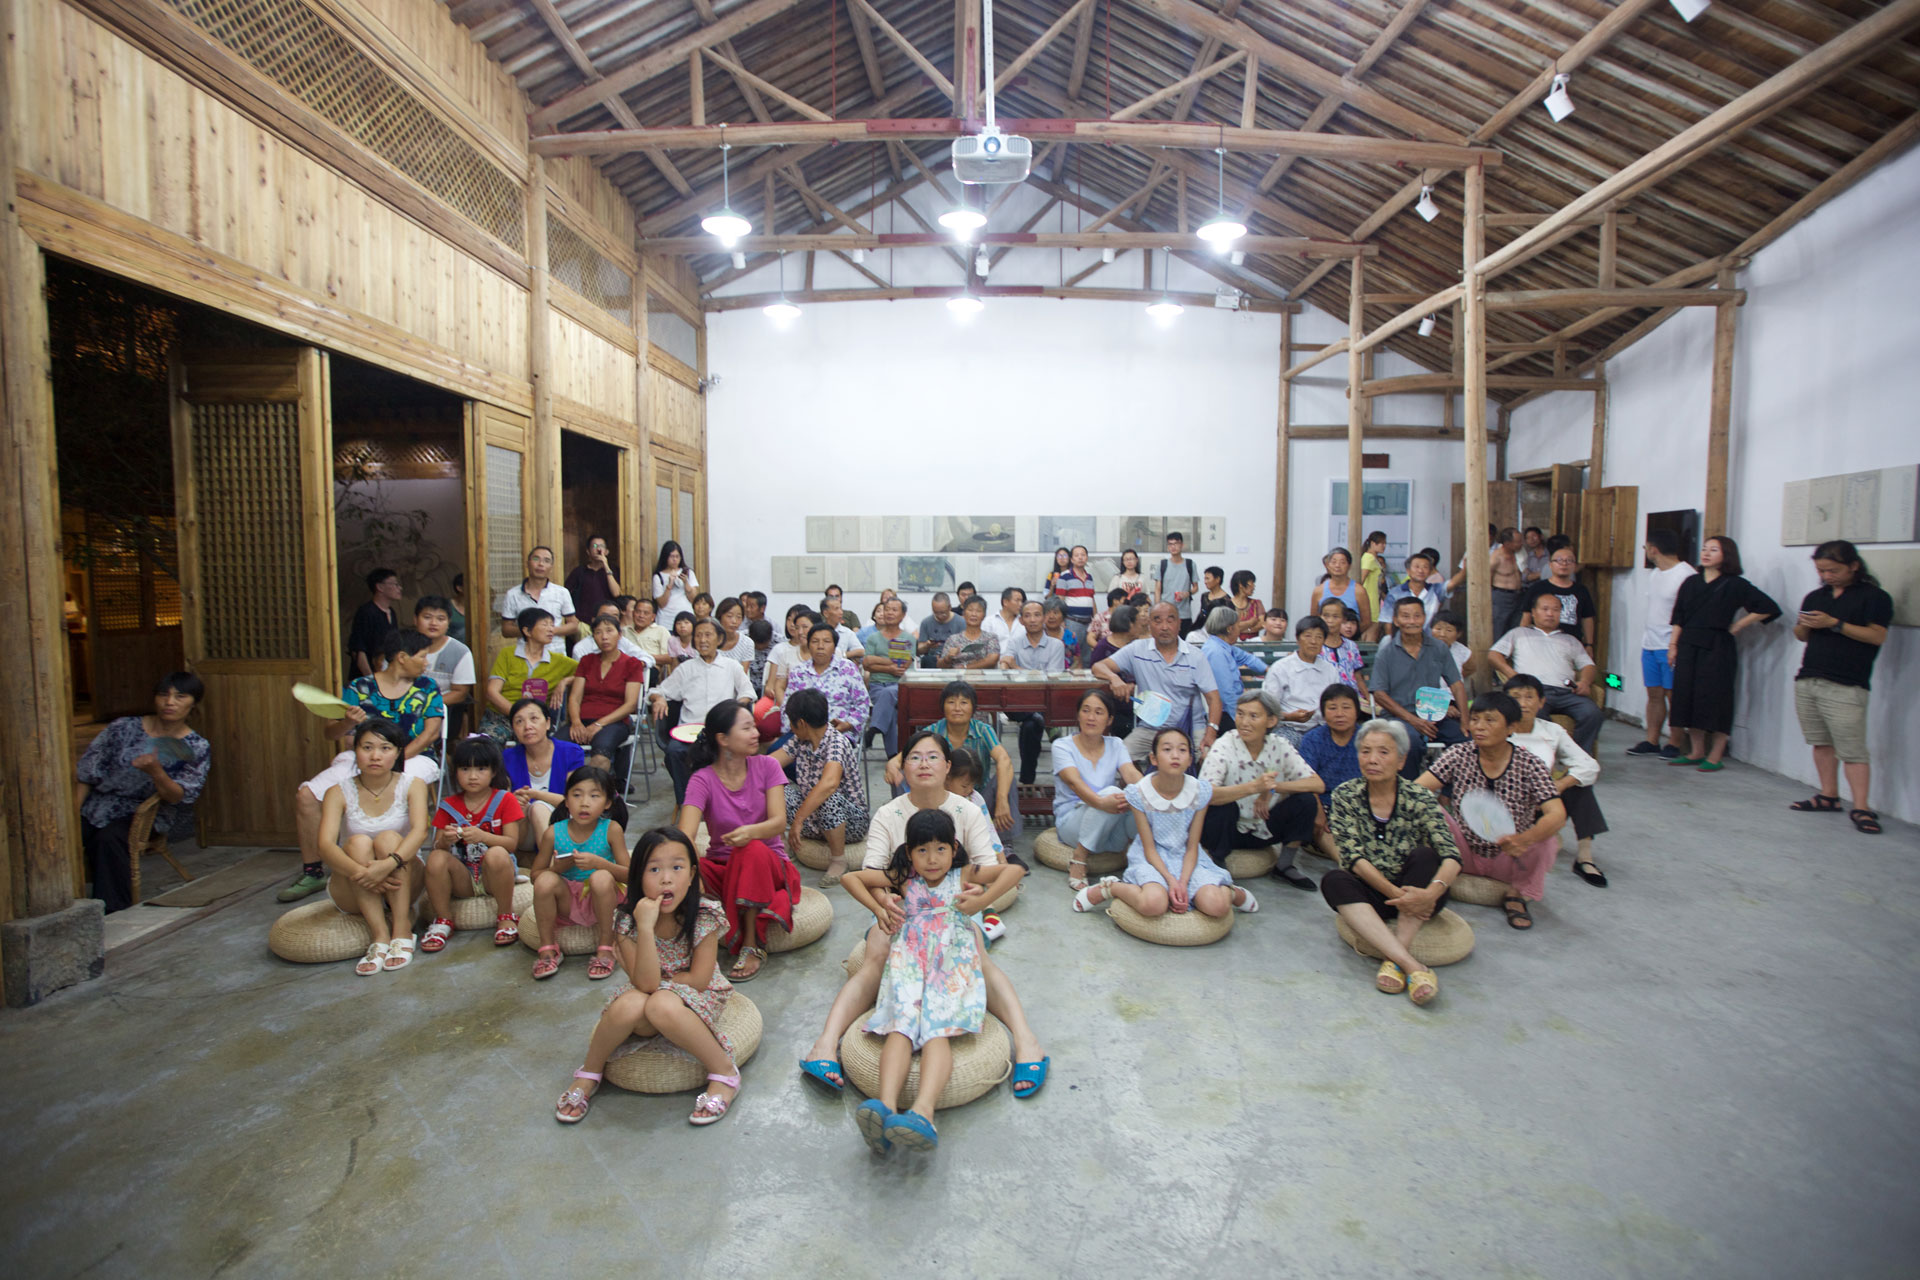 The Bishan villagers came to the School of Tiller for artist Liu Chuanhong's film screening.